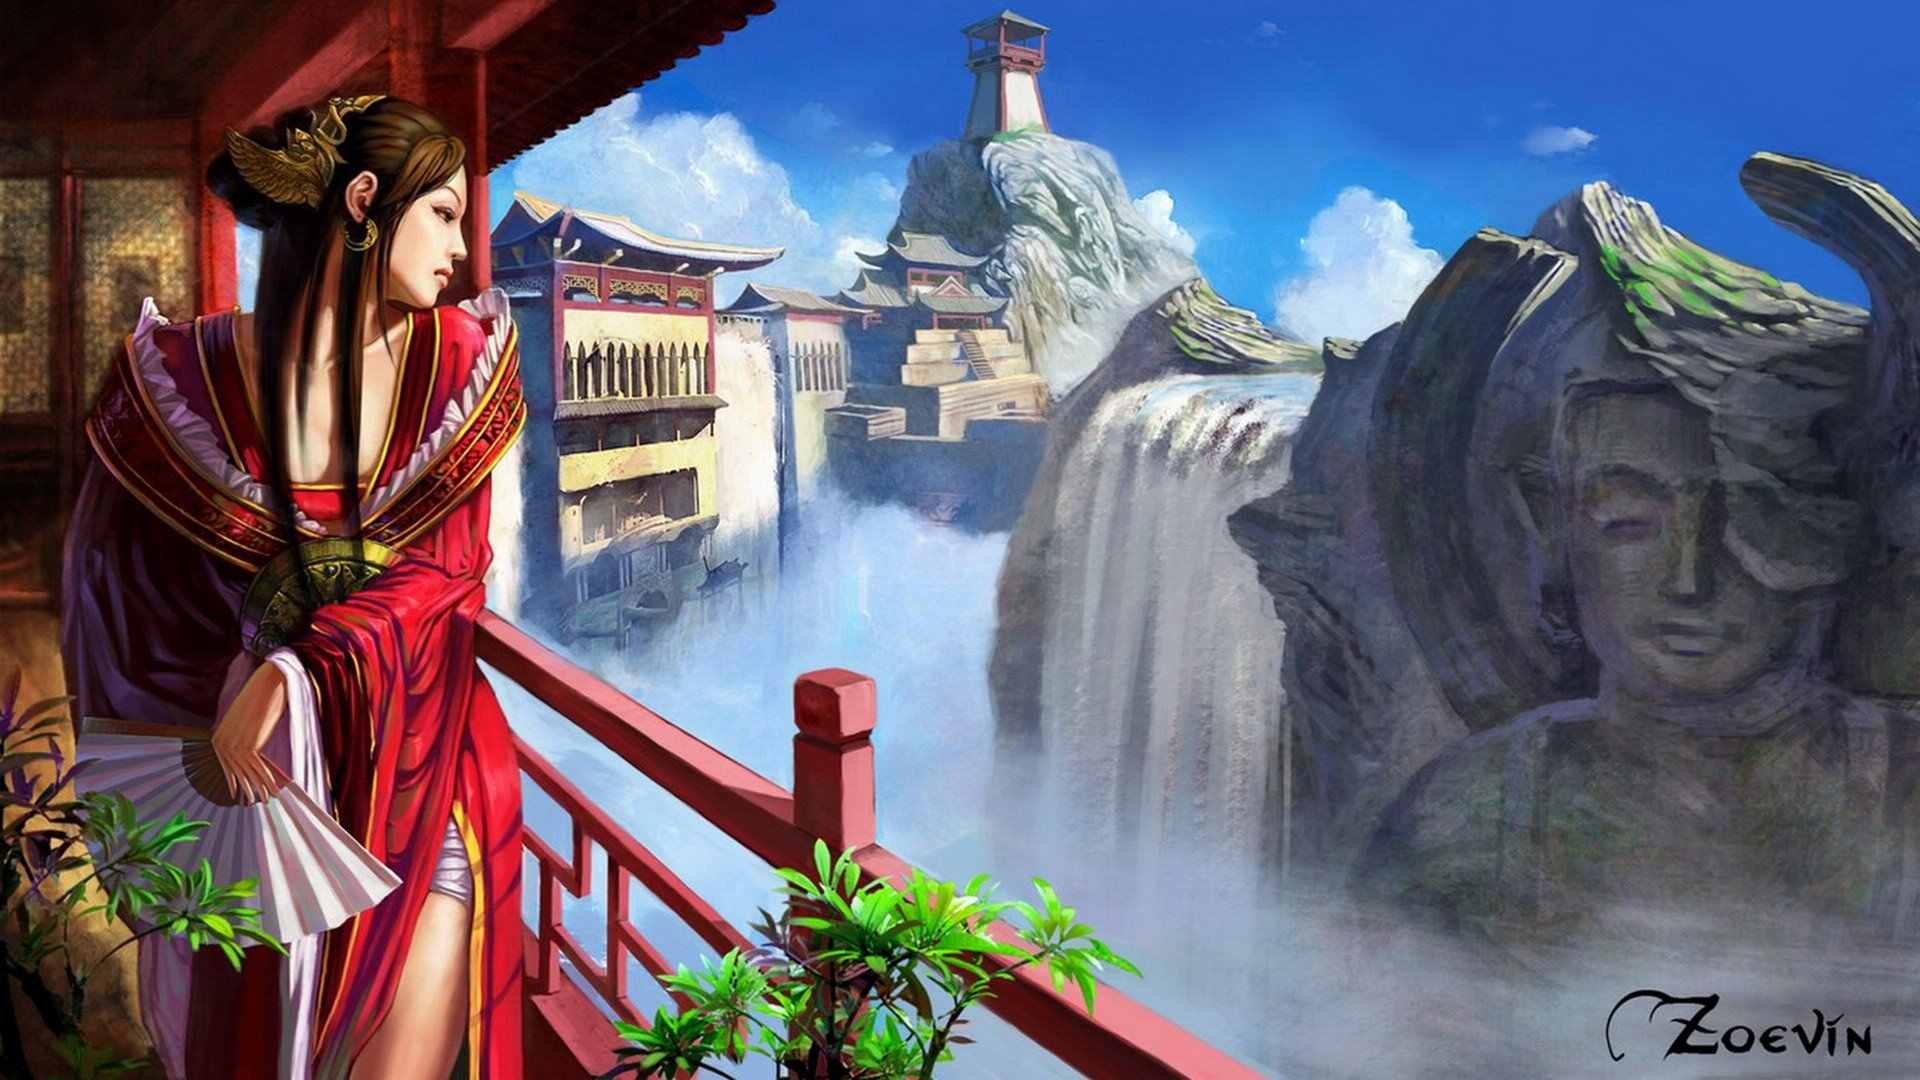 Beautiful Chinese Girl Paintings Widescreen Wallpaper Landscapes Fantasy Art Digital Art Artwork Anime Anime